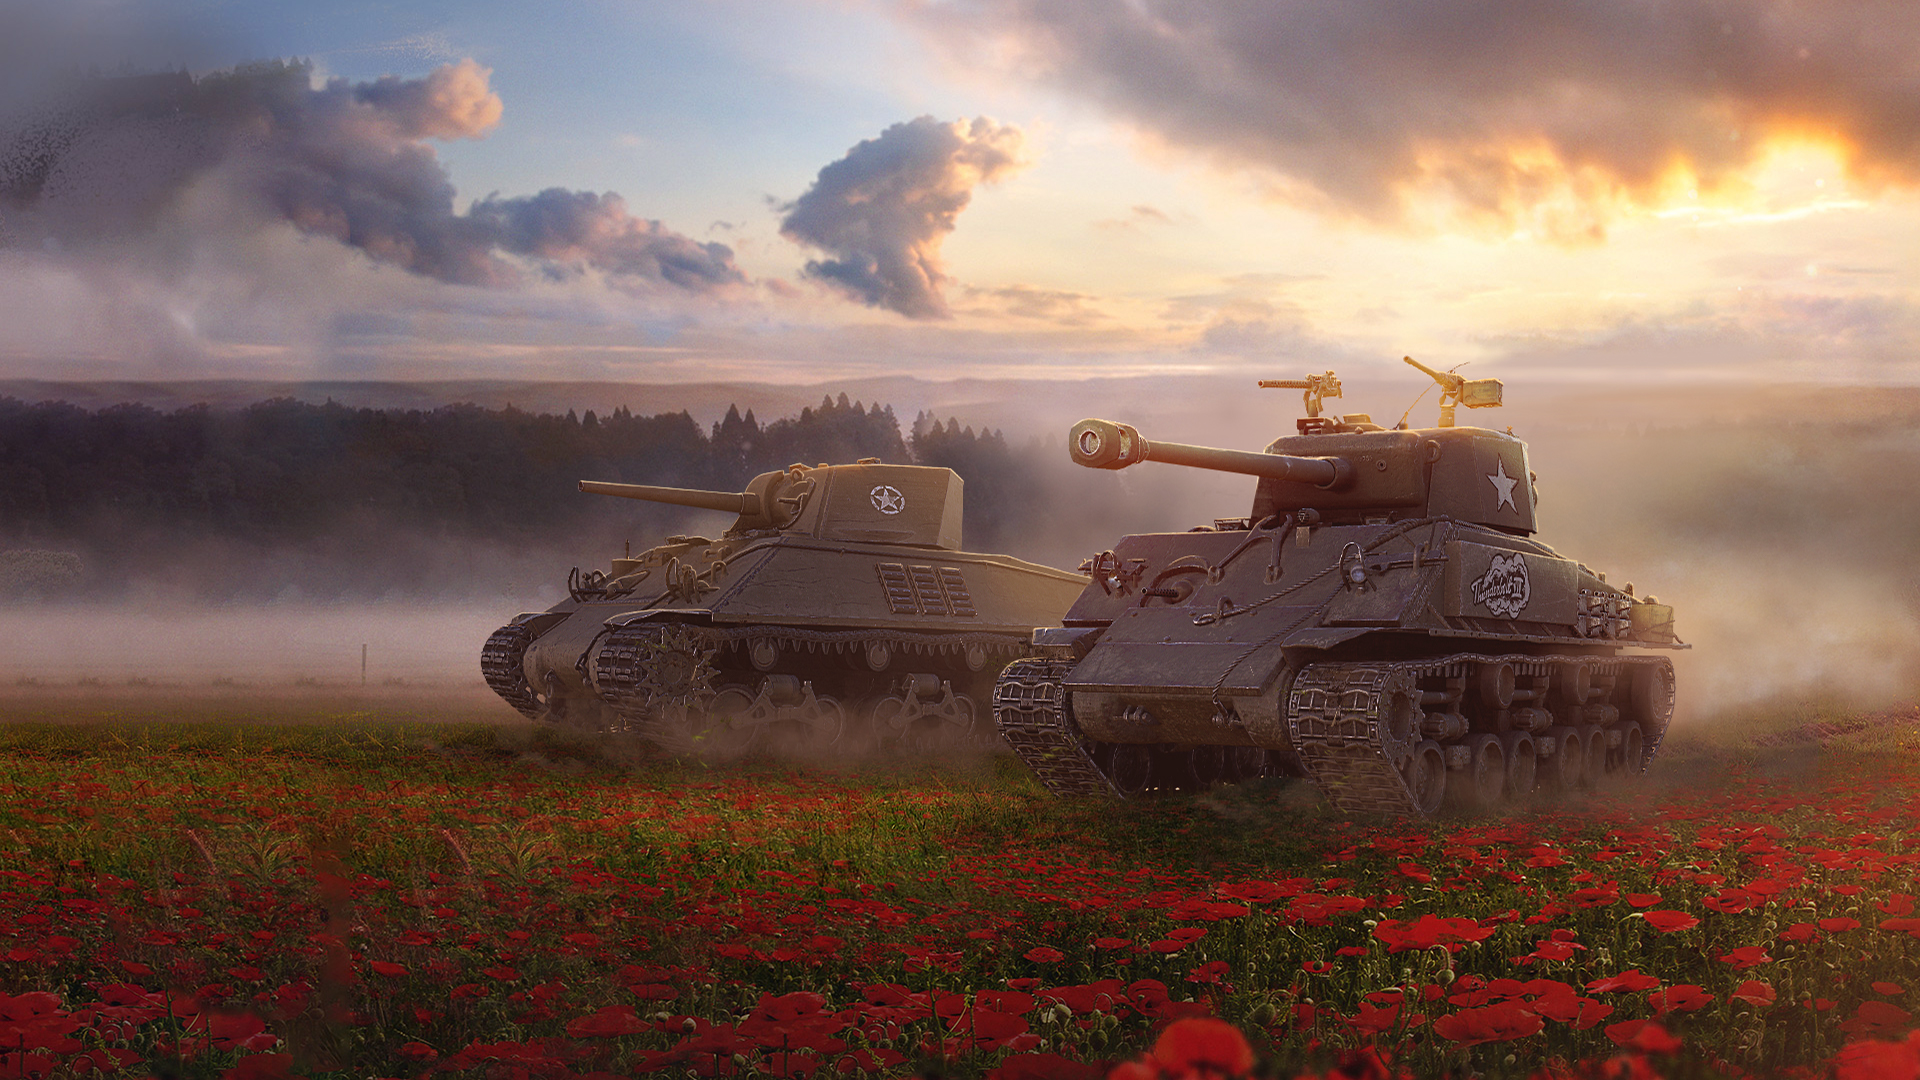 Tank Rewards—the official World of Tanks rewards program!